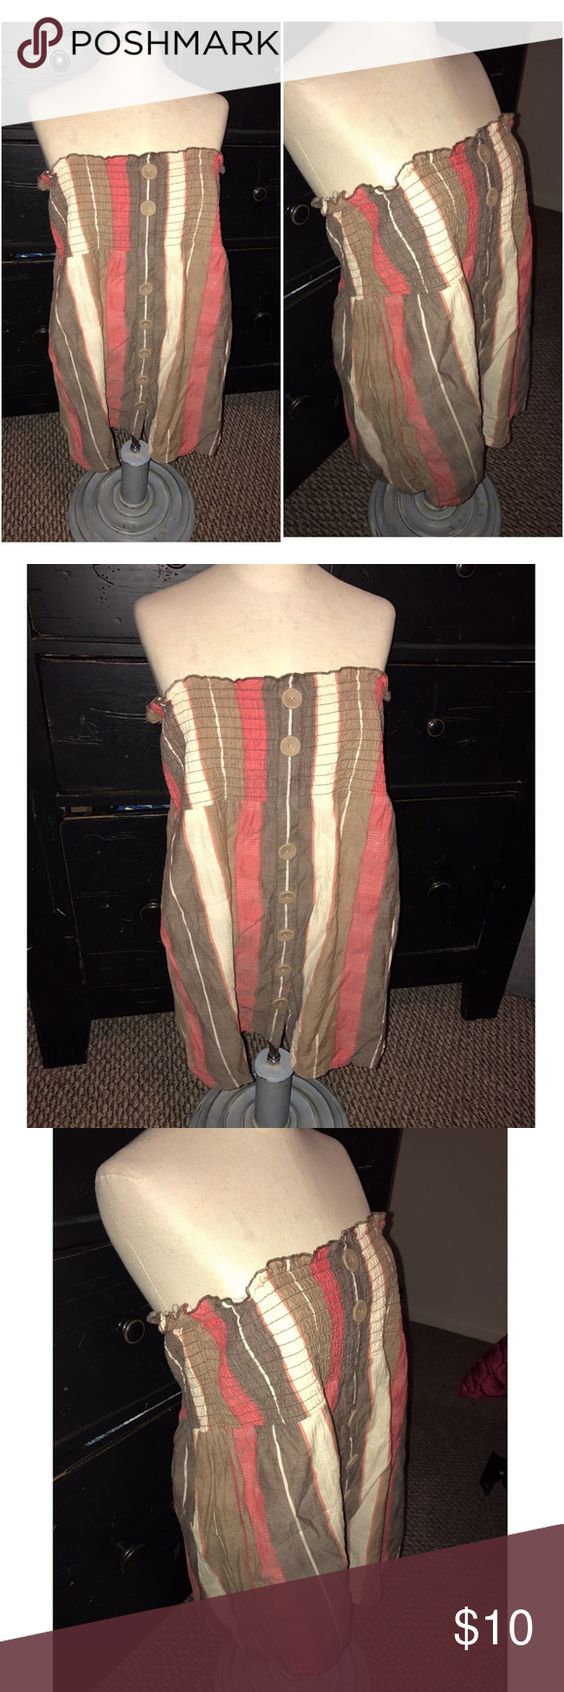 Maurice's top Red, brown, and tan striped button strapless top size medium from Maurice's Maurices Tops Blouses